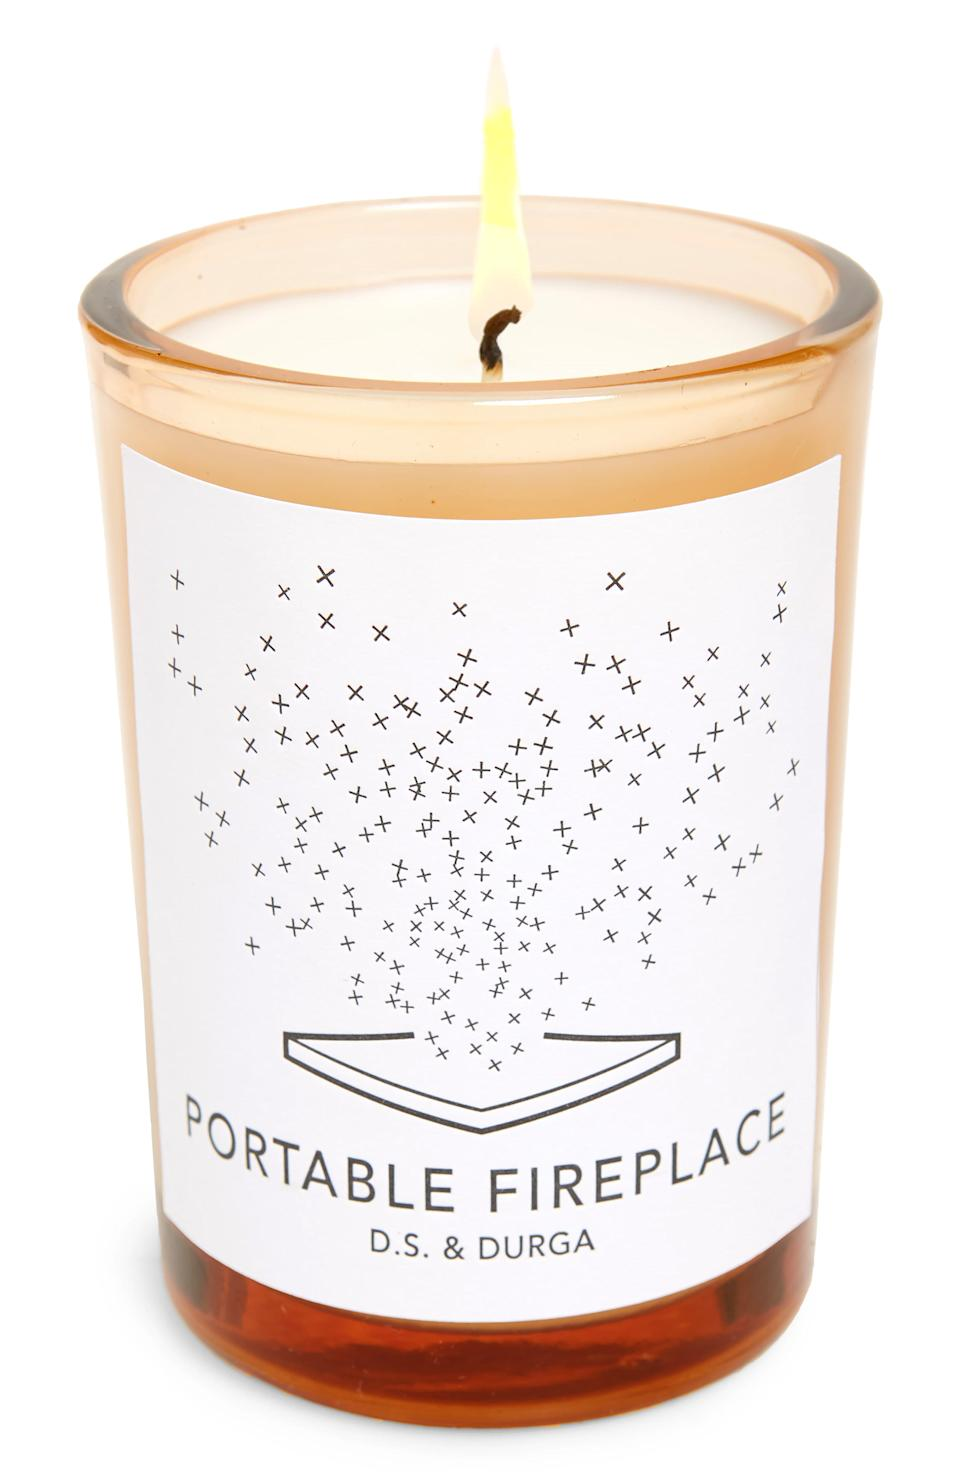 "<h3><a href=""https://shop.nordstrom.com/s/d-s-durga-portable-fireplace-scented-candle/5390596"" rel=""nofollow noopener"" target=""_blank"" data-ylk=""slk:D.S. & Durga Portable Fireplace Candle"" class=""link rapid-noclick-resp"">D.S. & Durga Portable Fireplace Candle</a> </h3><br>This luxury candle — filled with notes of pine to cedar, ash oak, and birch wood — as one <a href=""https://www.amazon.com/D-S-Durga-Portable-Fireplace-Candle/dp/B00VSDMGSM#customerReviews"" rel=""nofollow noopener"" target=""_blank"" data-ylk=""slk:Amazon reviewer"" class=""link rapid-noclick-resp"">Amazon reviewer</a> frankly put it, ""really does smell like a wood fire.""<br><br><strong>D.S. & Durga</strong> Portable Fireplace Candle, $, available at <a href=""https://go.skimresources.com/?id=30283X879131&url=https%3A%2F%2Fneedsupply.com%2Fportable-fireplace-candle%2F5234341.html"" rel=""nofollow noopener"" target=""_blank"" data-ylk=""slk:Need Supply"" class=""link rapid-noclick-resp"">Need Supply</a>"